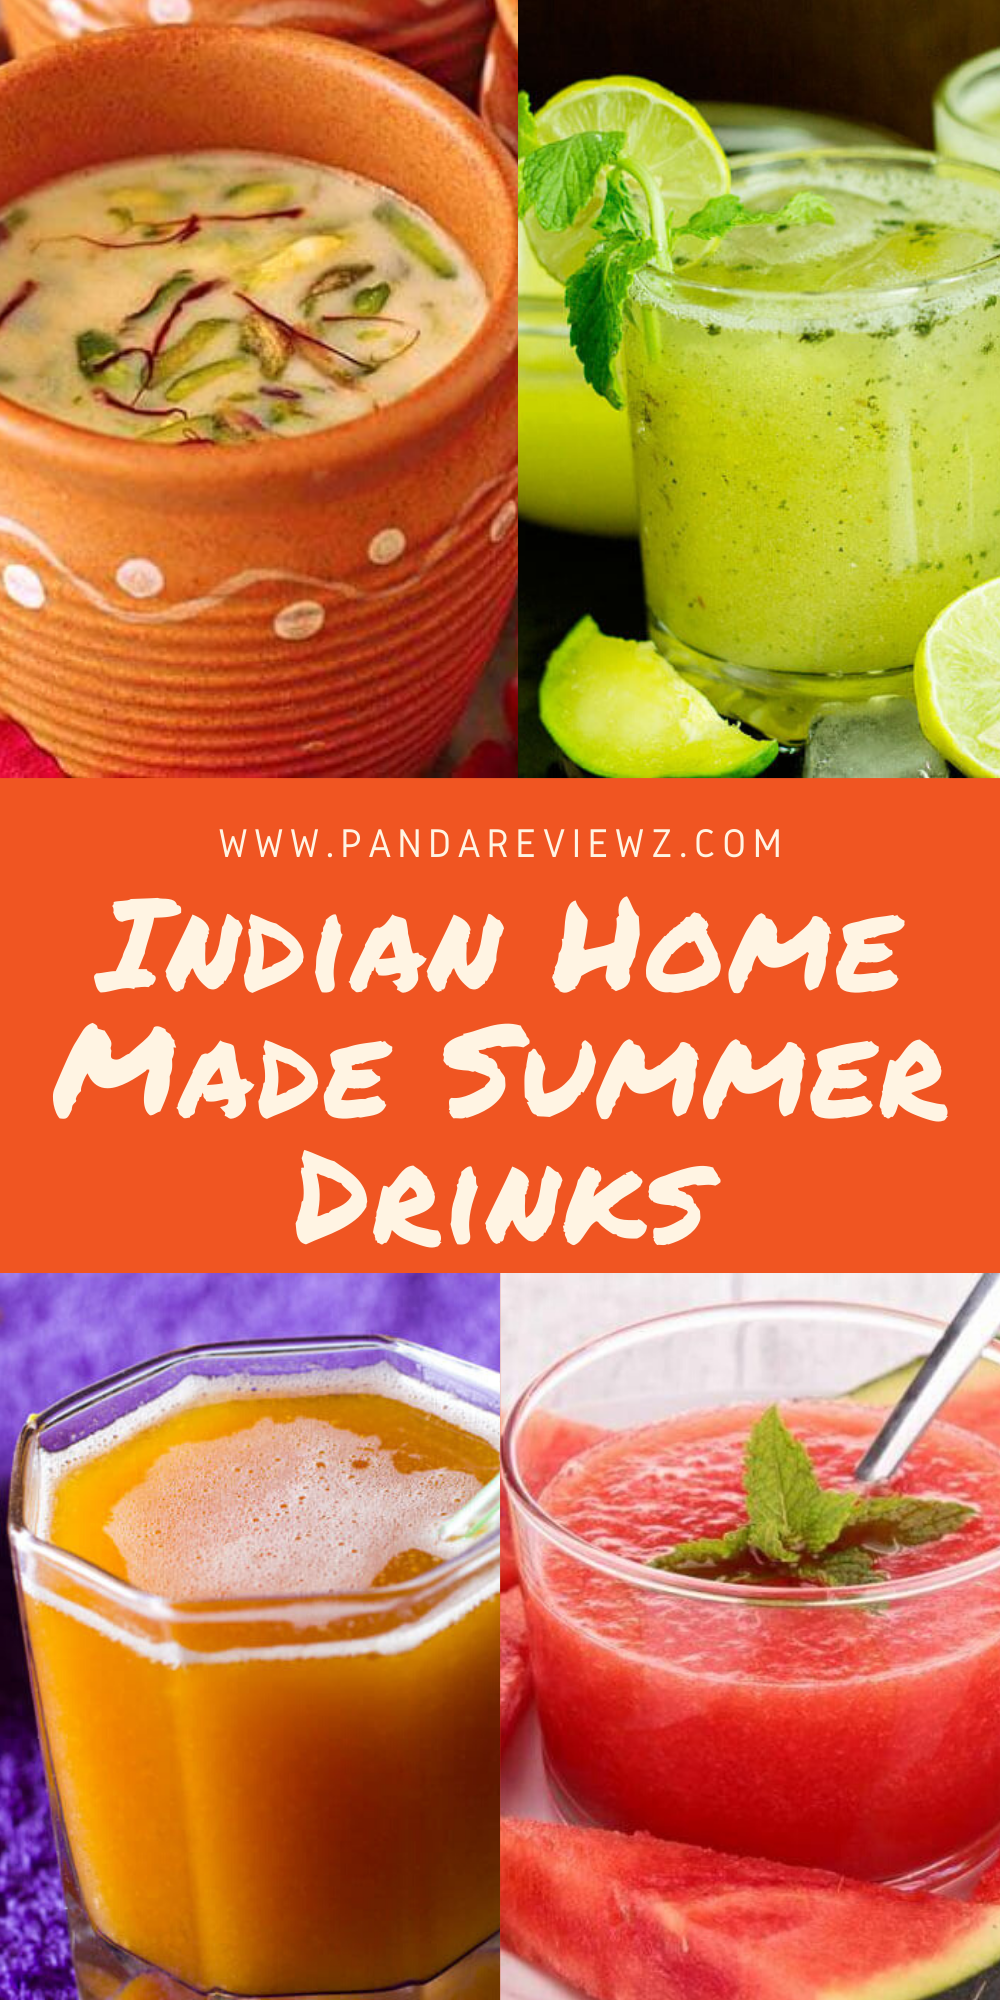 summer drinks in india